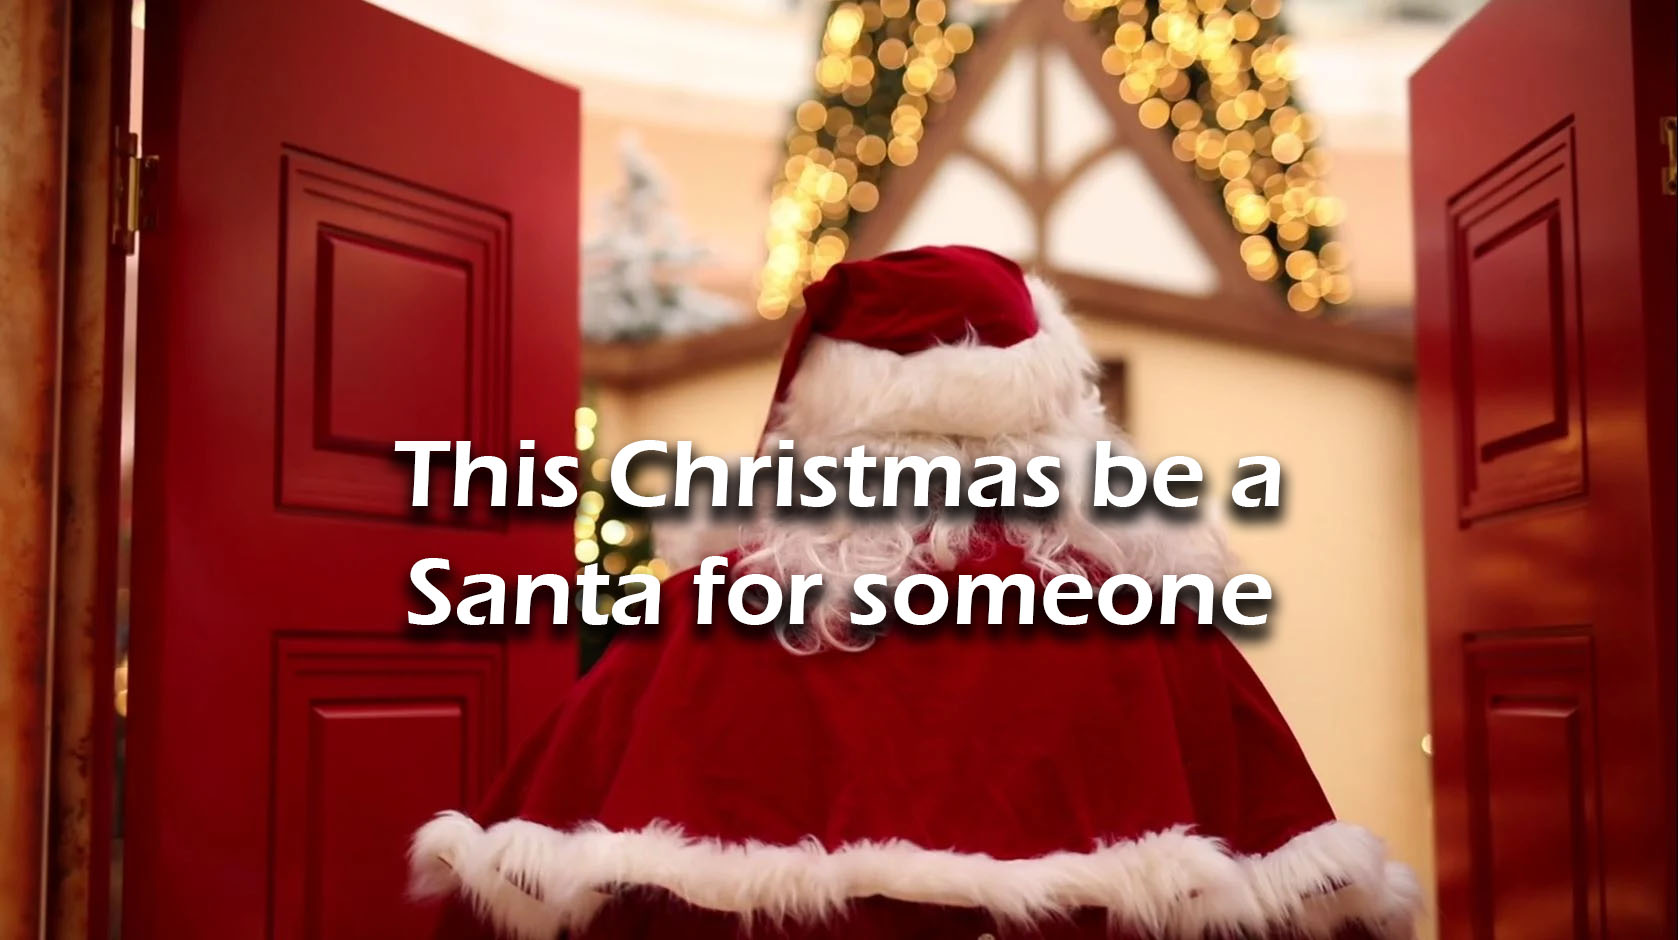 This Christmas be a Santa for someone